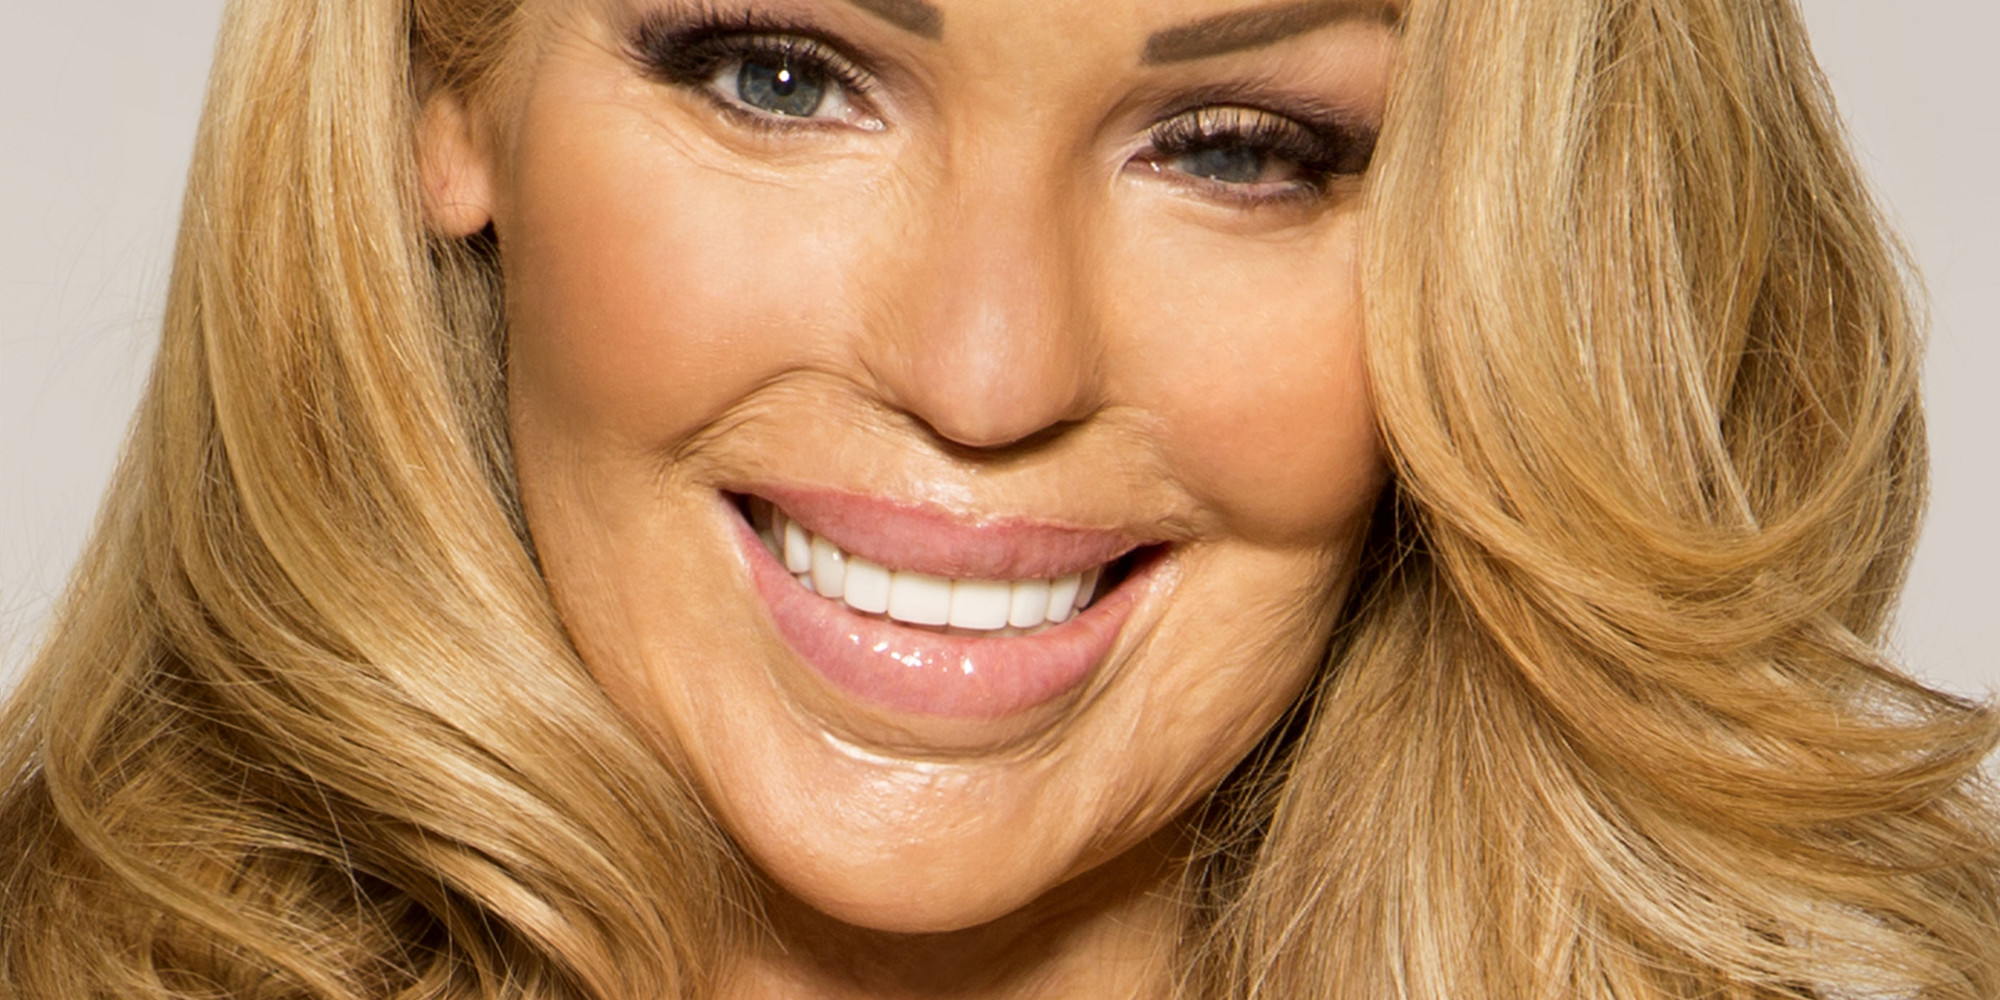 Katie Piper Now My life katie piper on dating